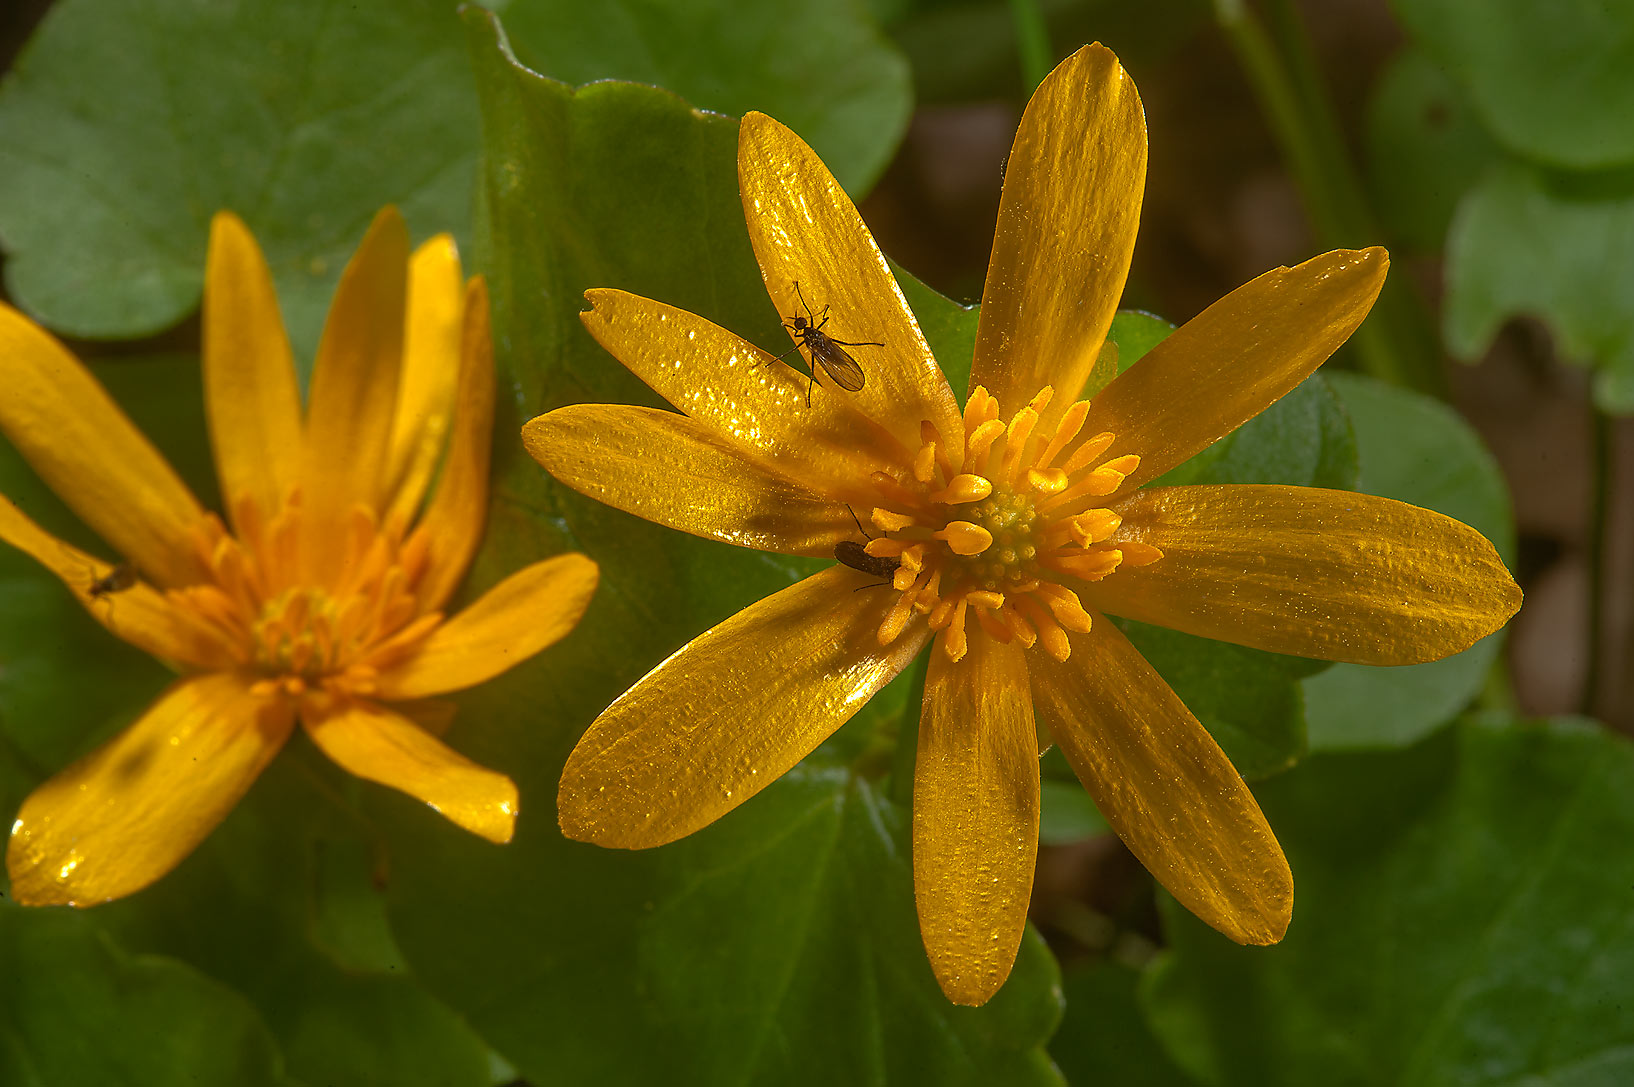 Two flowers of lesser celandine (Ficaria verna...a suburb of St.Petersburg, Russia